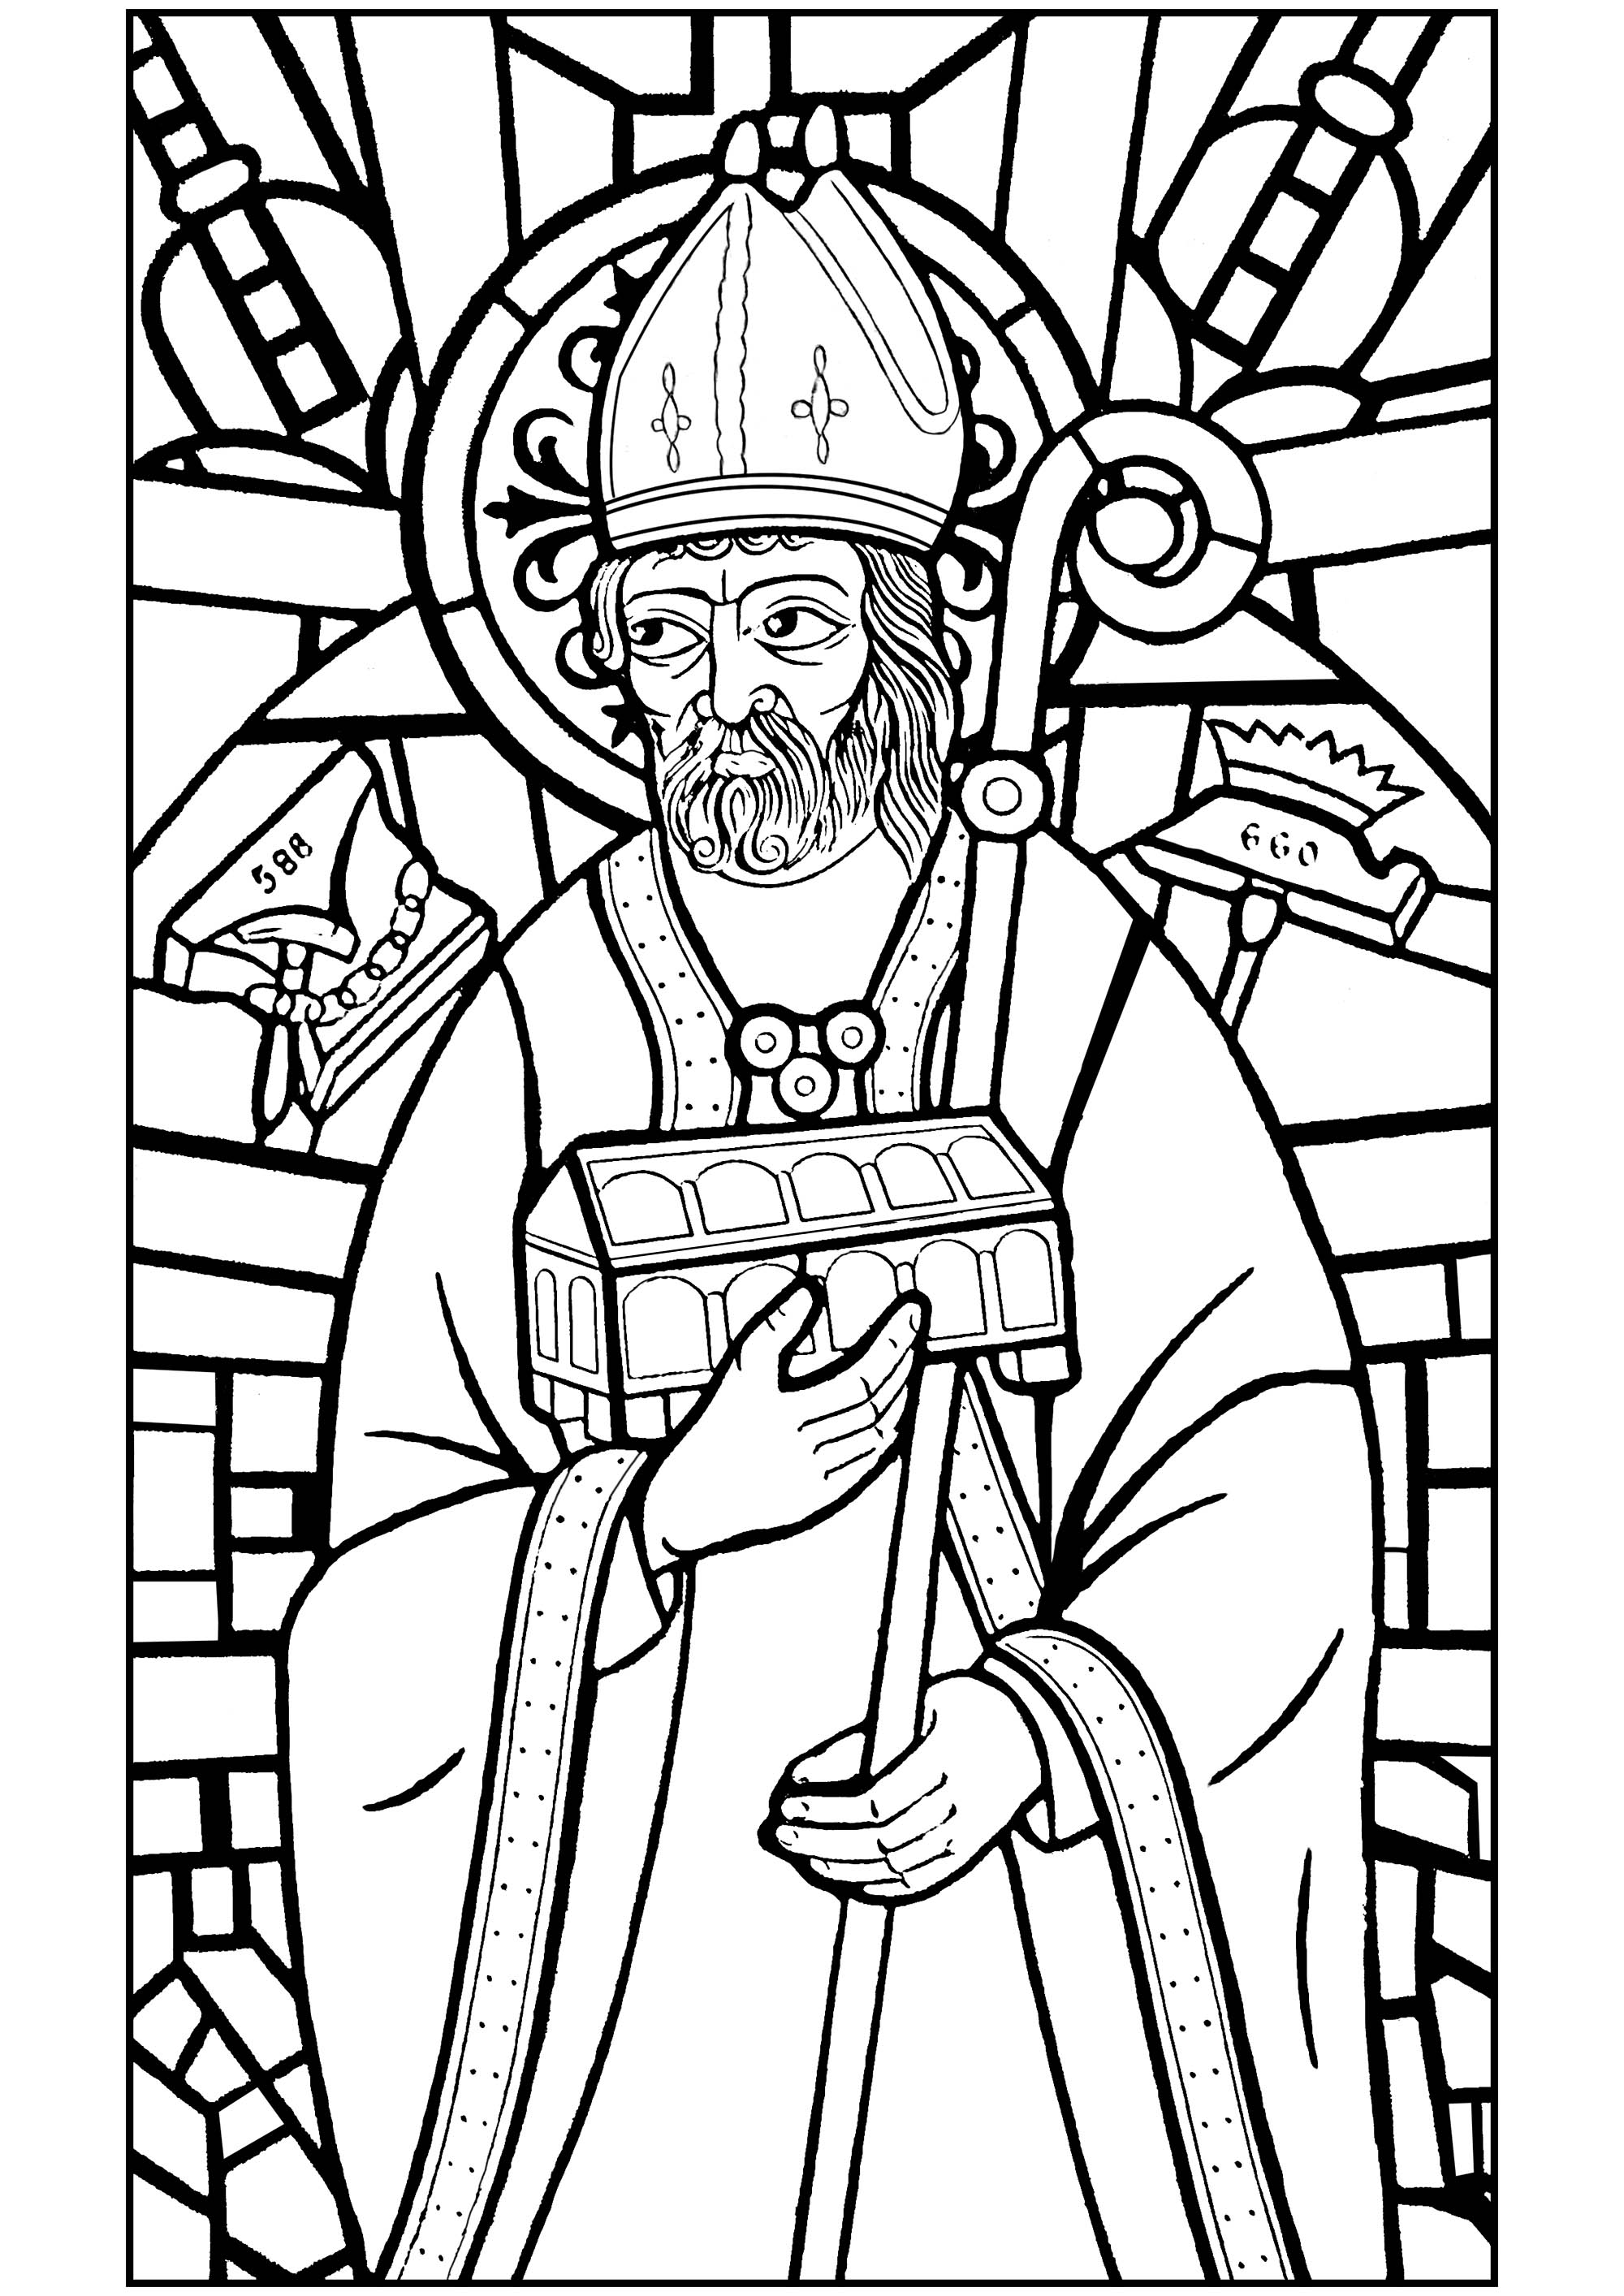 Saint Eligius is the patron saint of goldsmiths, other metalworkers, and coin collectors. Here is a beautiful stained glass window representing him, turned into a coloring page.